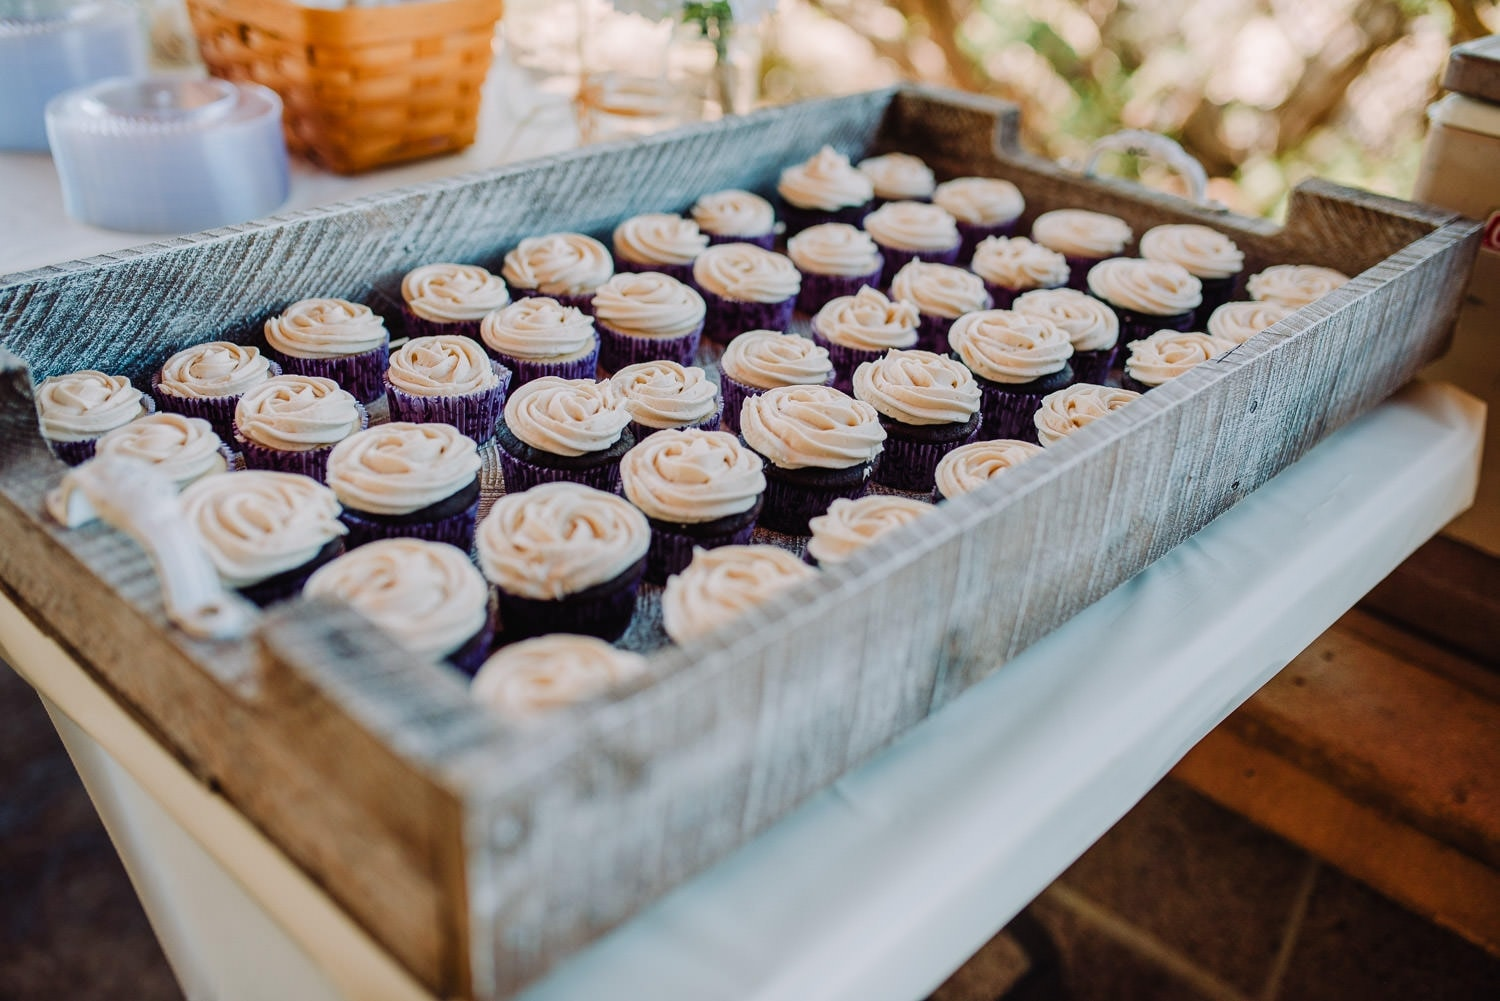 A close view of purple cupcakes with white frosting at the wedding reception at Elena Gallegos Park